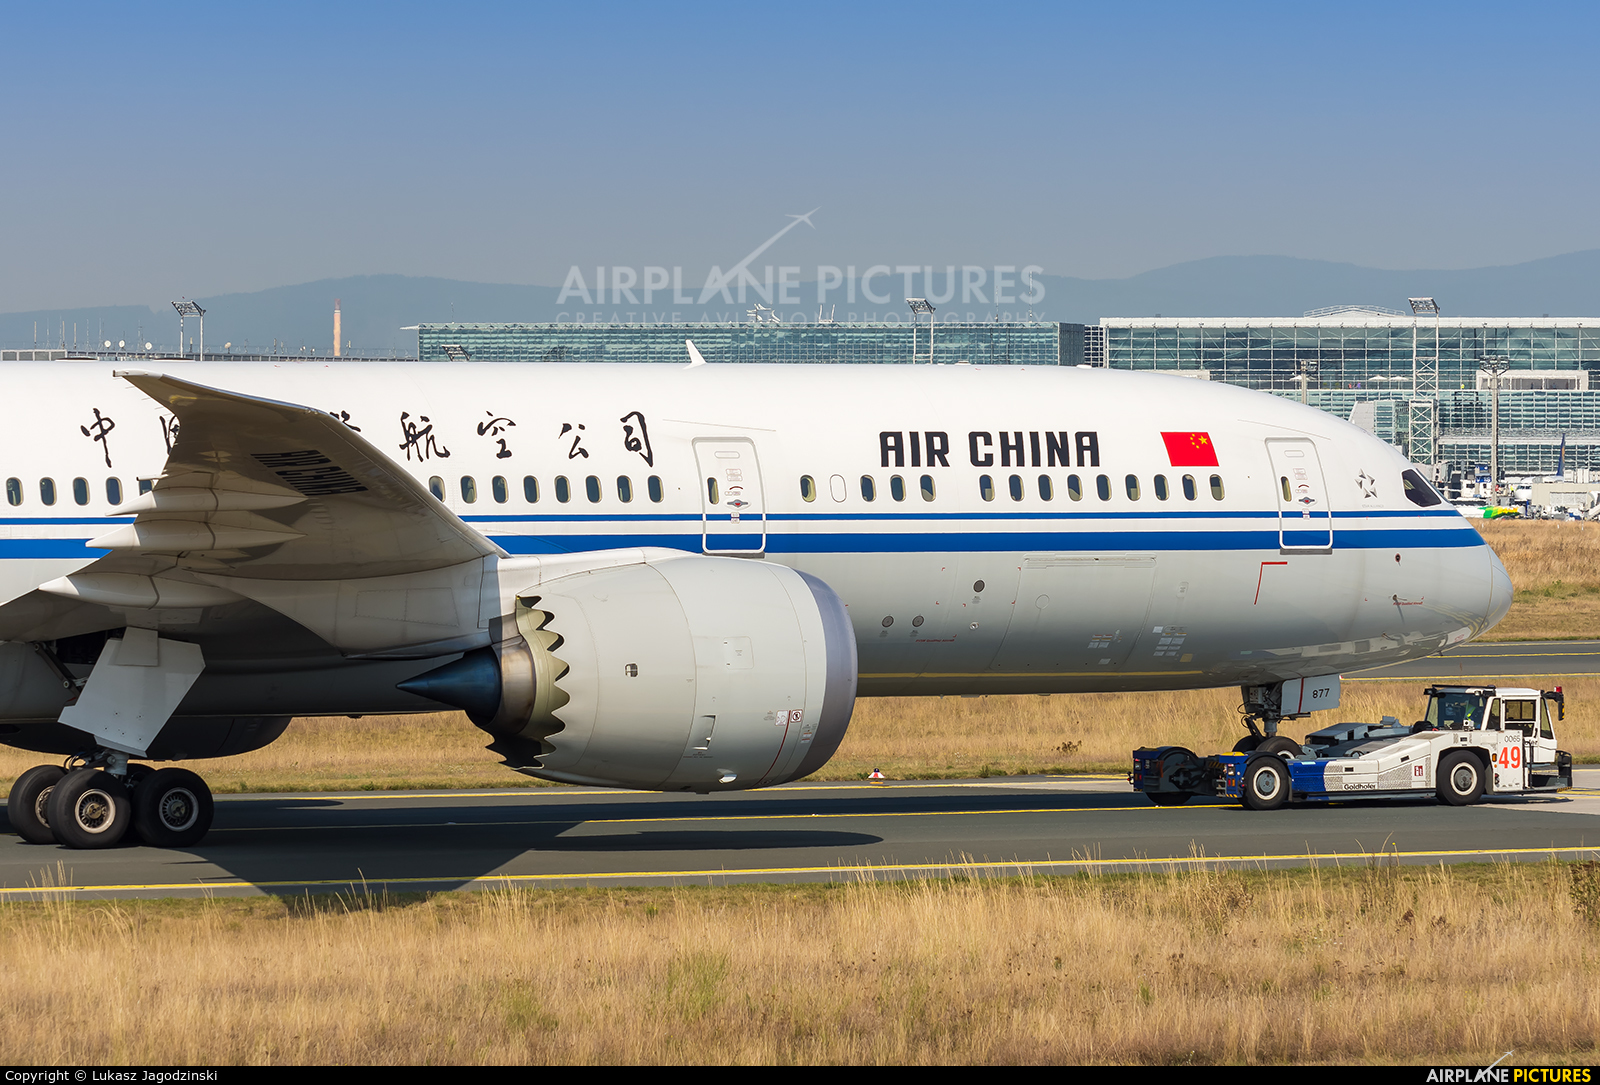 Air China B-7877 aircraft at Frankfurt